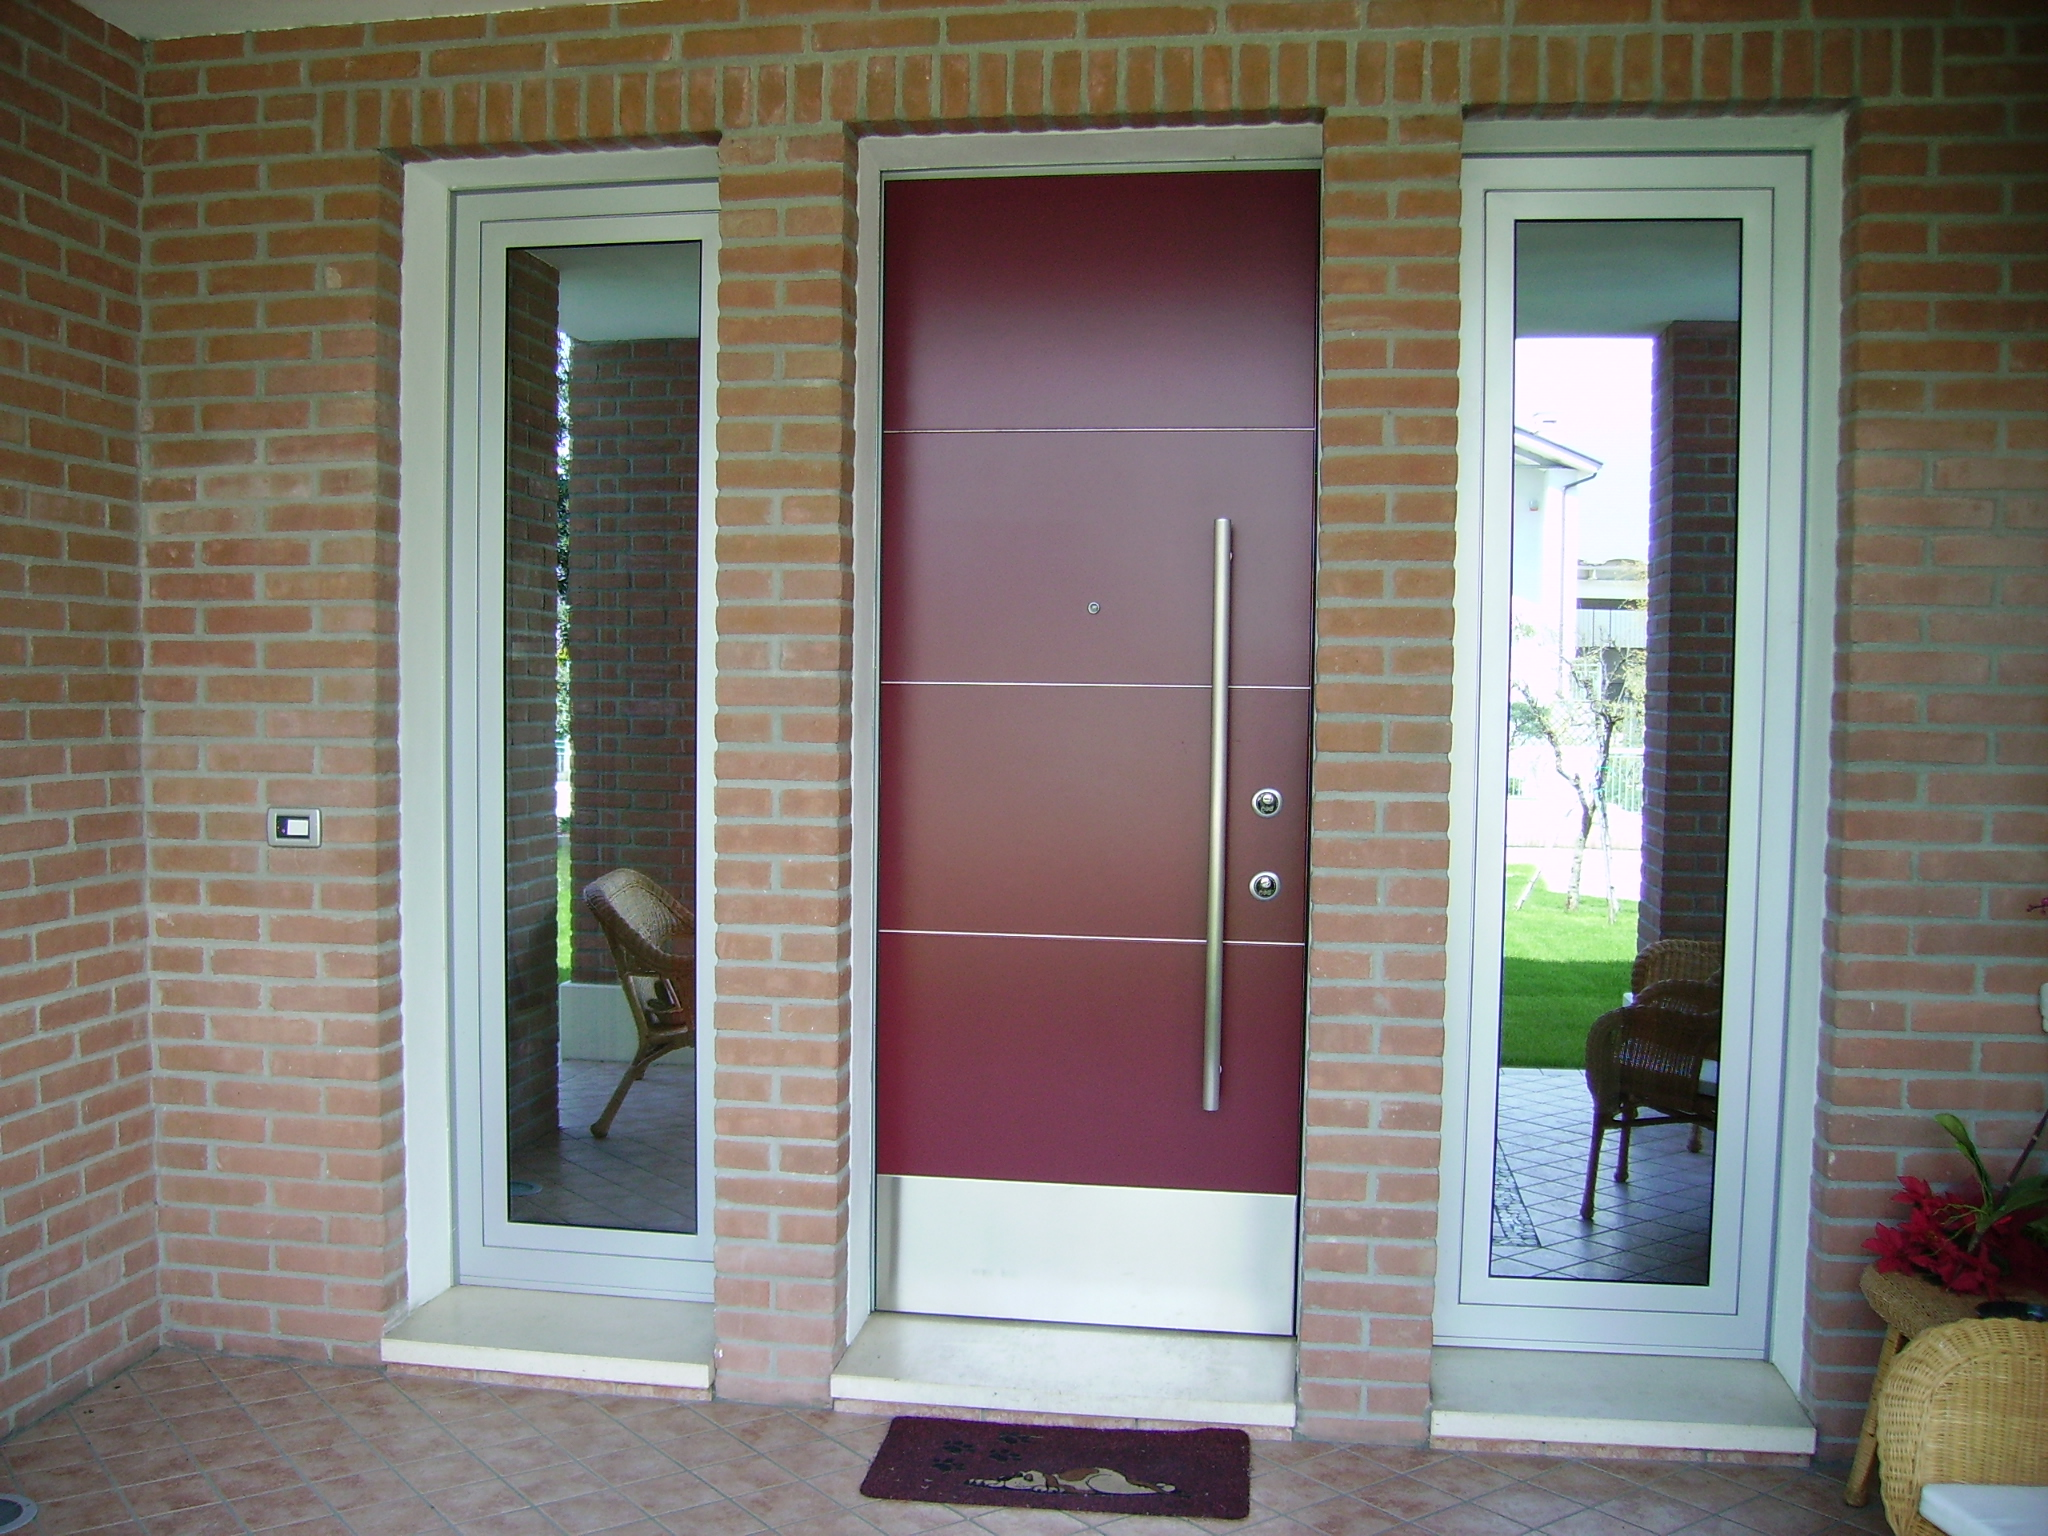 Porte esterne in ferro pz78 regardsdefemmes for Porte in pvc prezzi